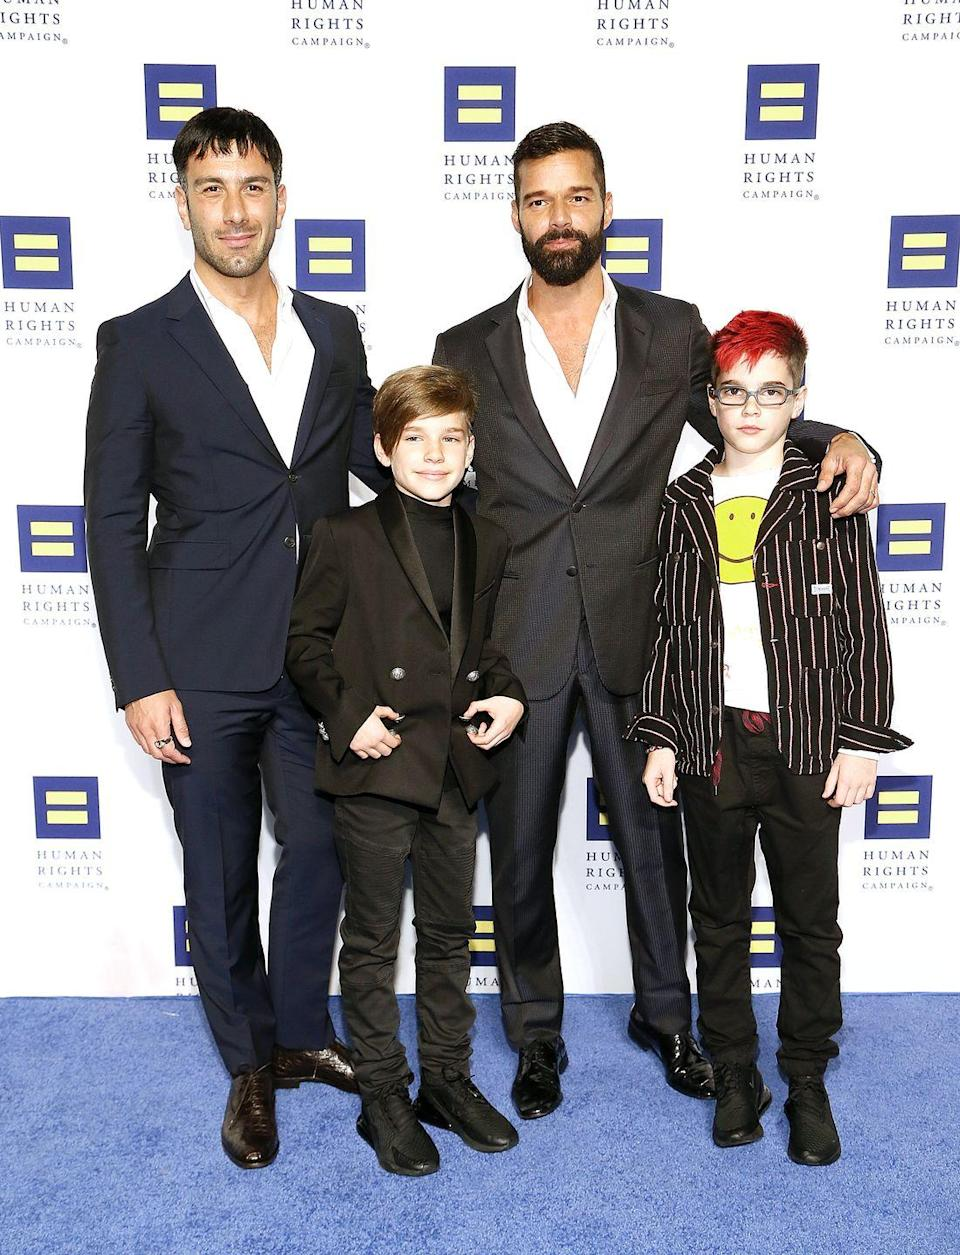 "<p>Ricky Martin has always wanted a <a href=""https://www.cbsnews.com/news/ricky-martin-on-performing-coming-out-and-fatherhood/"" rel=""nofollow noopener"" target=""_blank"" data-ylk=""slk:big family"" class=""link rapid-noclick-resp"">big family</a>. He and husband Jwan Yosef welcomed their daughter Renn last year, making them a family of six. They're pictured here with their oldest, twin sons Matteo and Valentino. ""Everything changes. It's not about you anymore,"" he said to <a href=""https://www.cbsnews.com/news/ricky-martin-on-performing-coming-out-and-fatherhood/"" rel=""nofollow noopener"" target=""_blank"" data-ylk=""slk:CBS News"" class=""link rapid-noclick-resp"">CBS News</a> about fatherhood. ""And I'm only starting; I want a big family. I like the noise of children running around the house."" </p>"